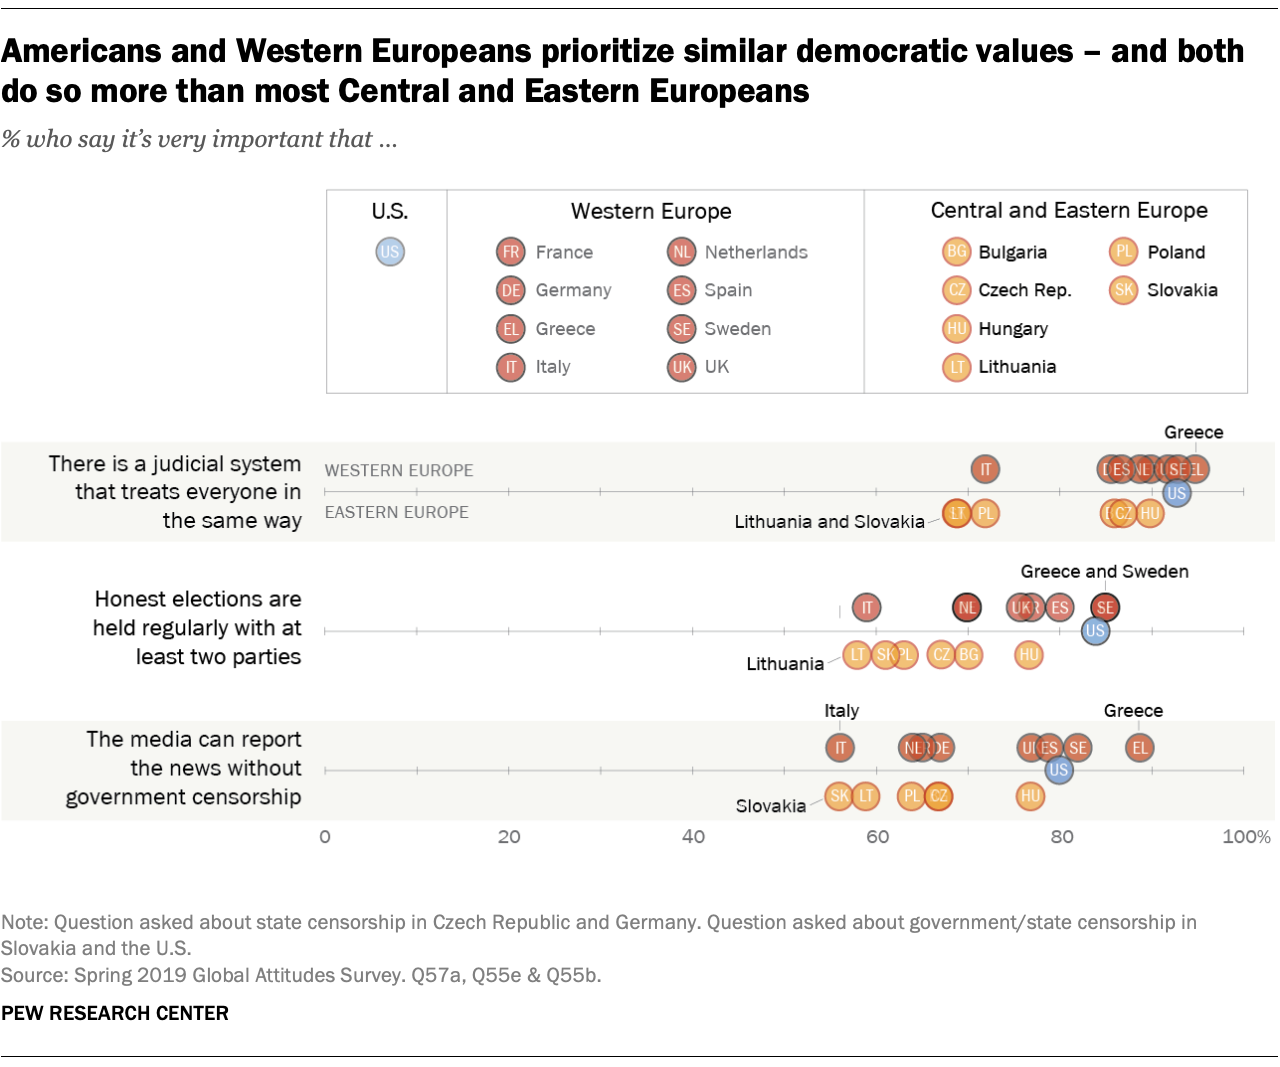 Americans and Western Europeans prioritize similar democratic values – and both do so more than most Central and Eastern Europeans